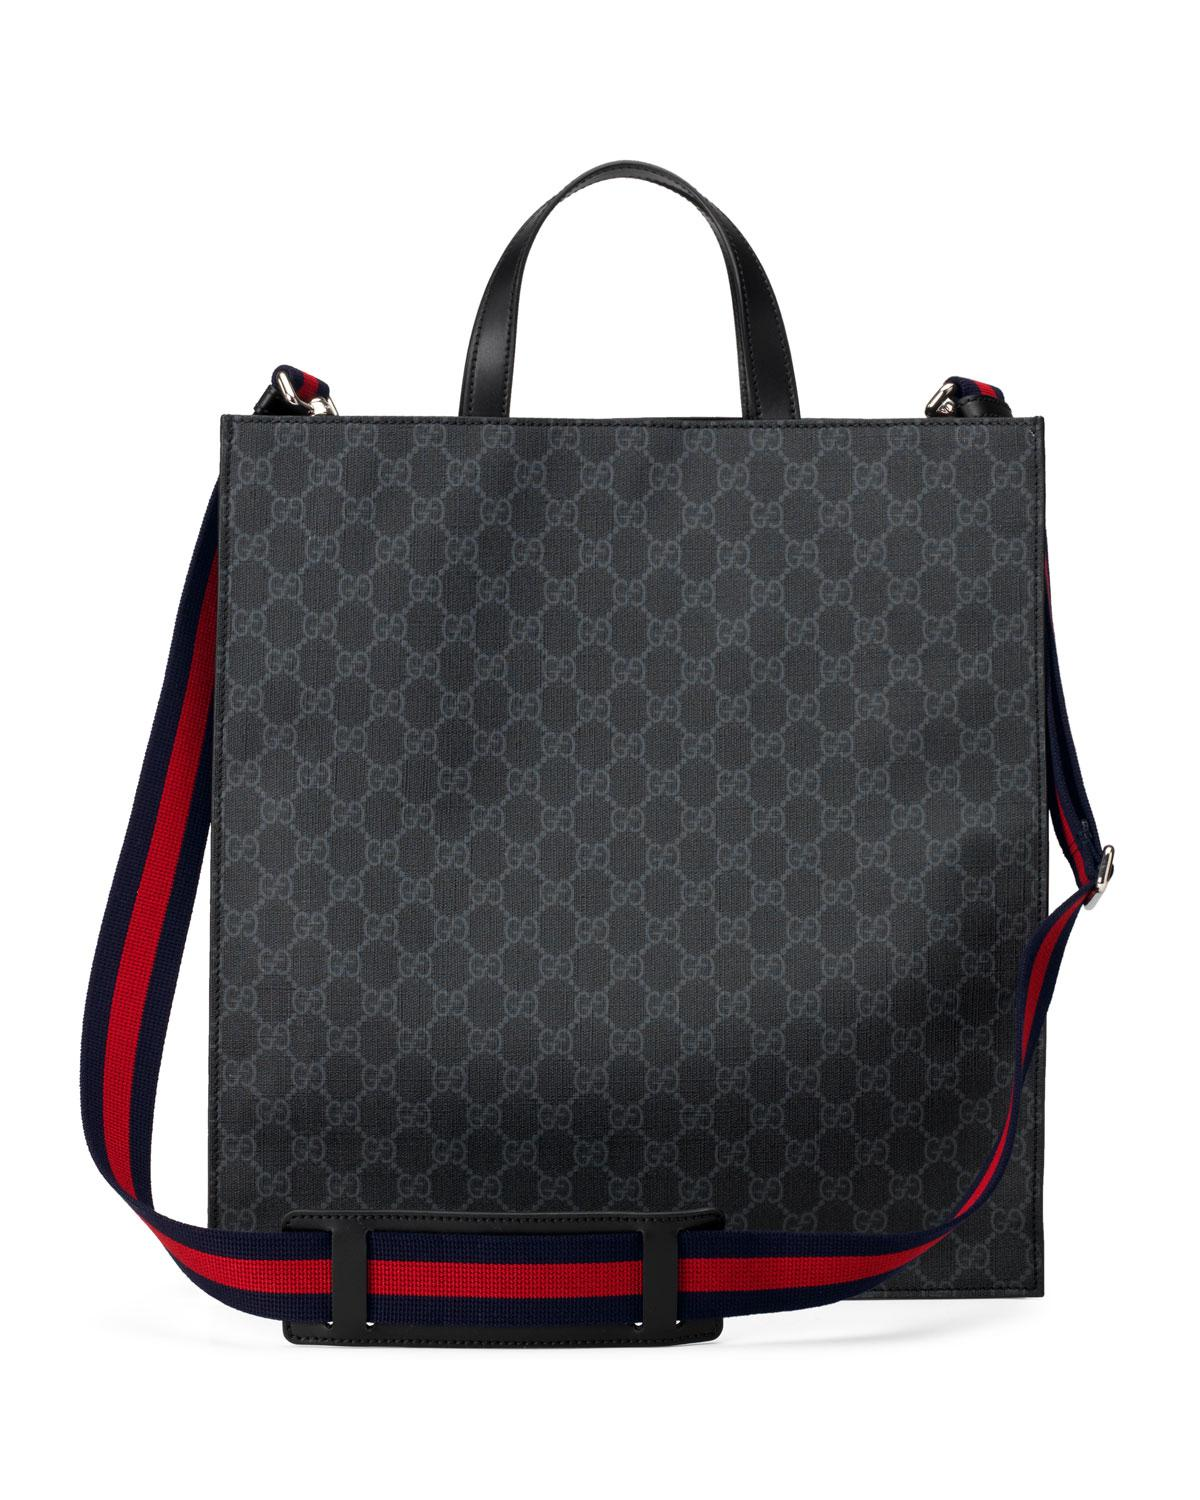 57d96acf015 Gucci - Black Men s GG Supreme Tote Bag With Patches - Lyst. View fullscreen